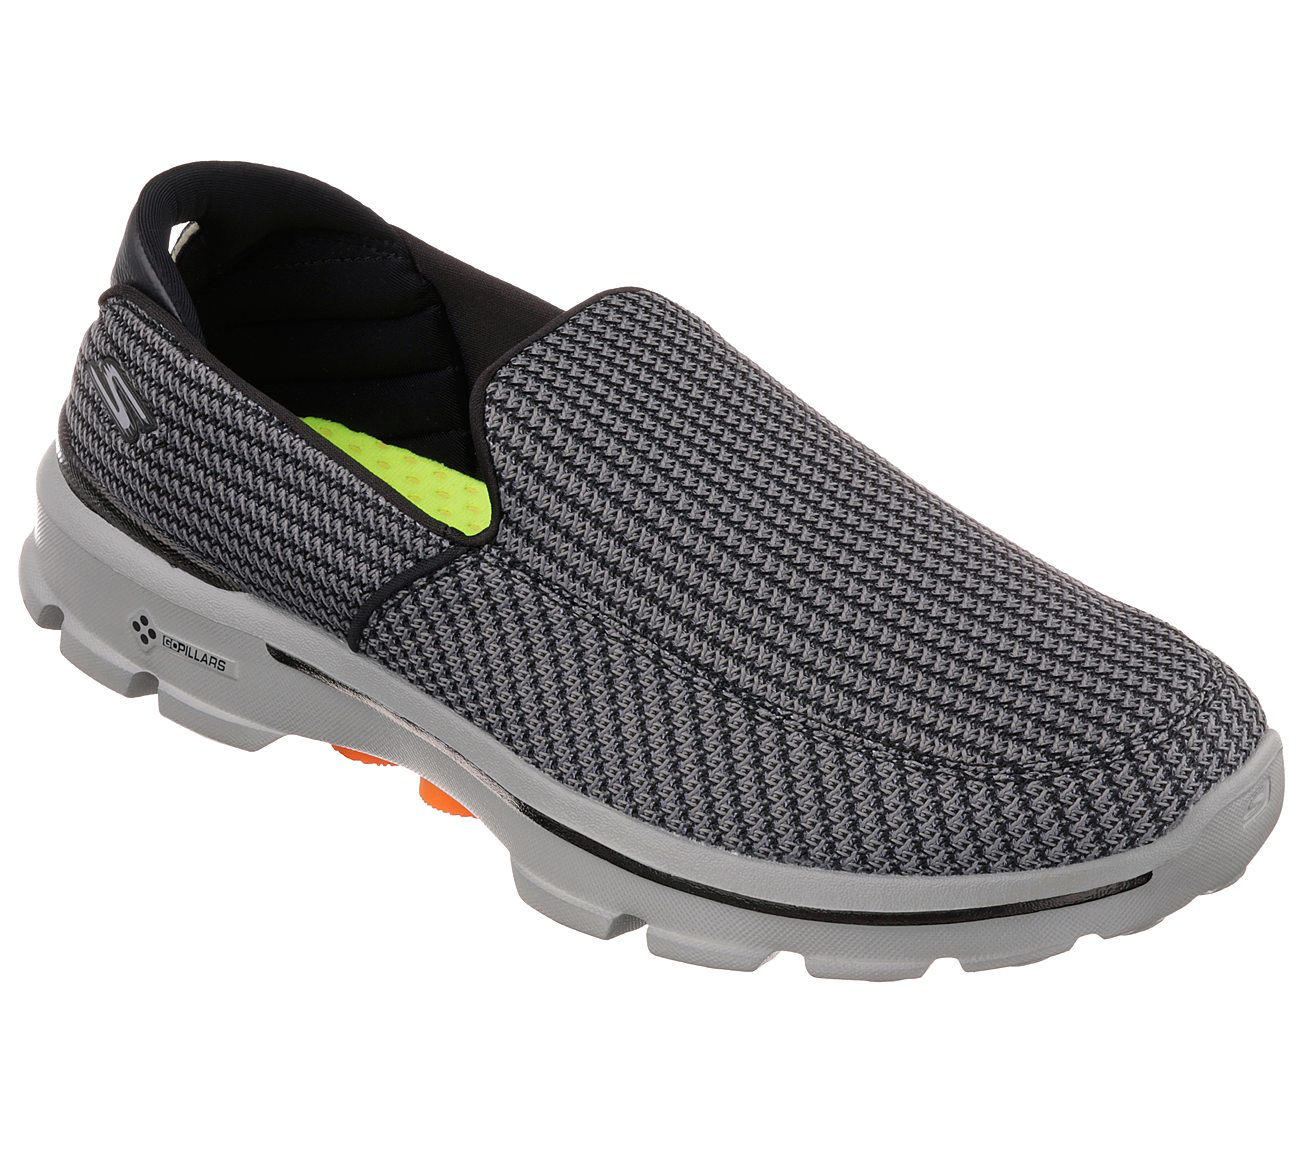 bec0c13155b0e Buy SKECHERS Skechers GOwalk 3 Skechers Performance Shoes only $75.00